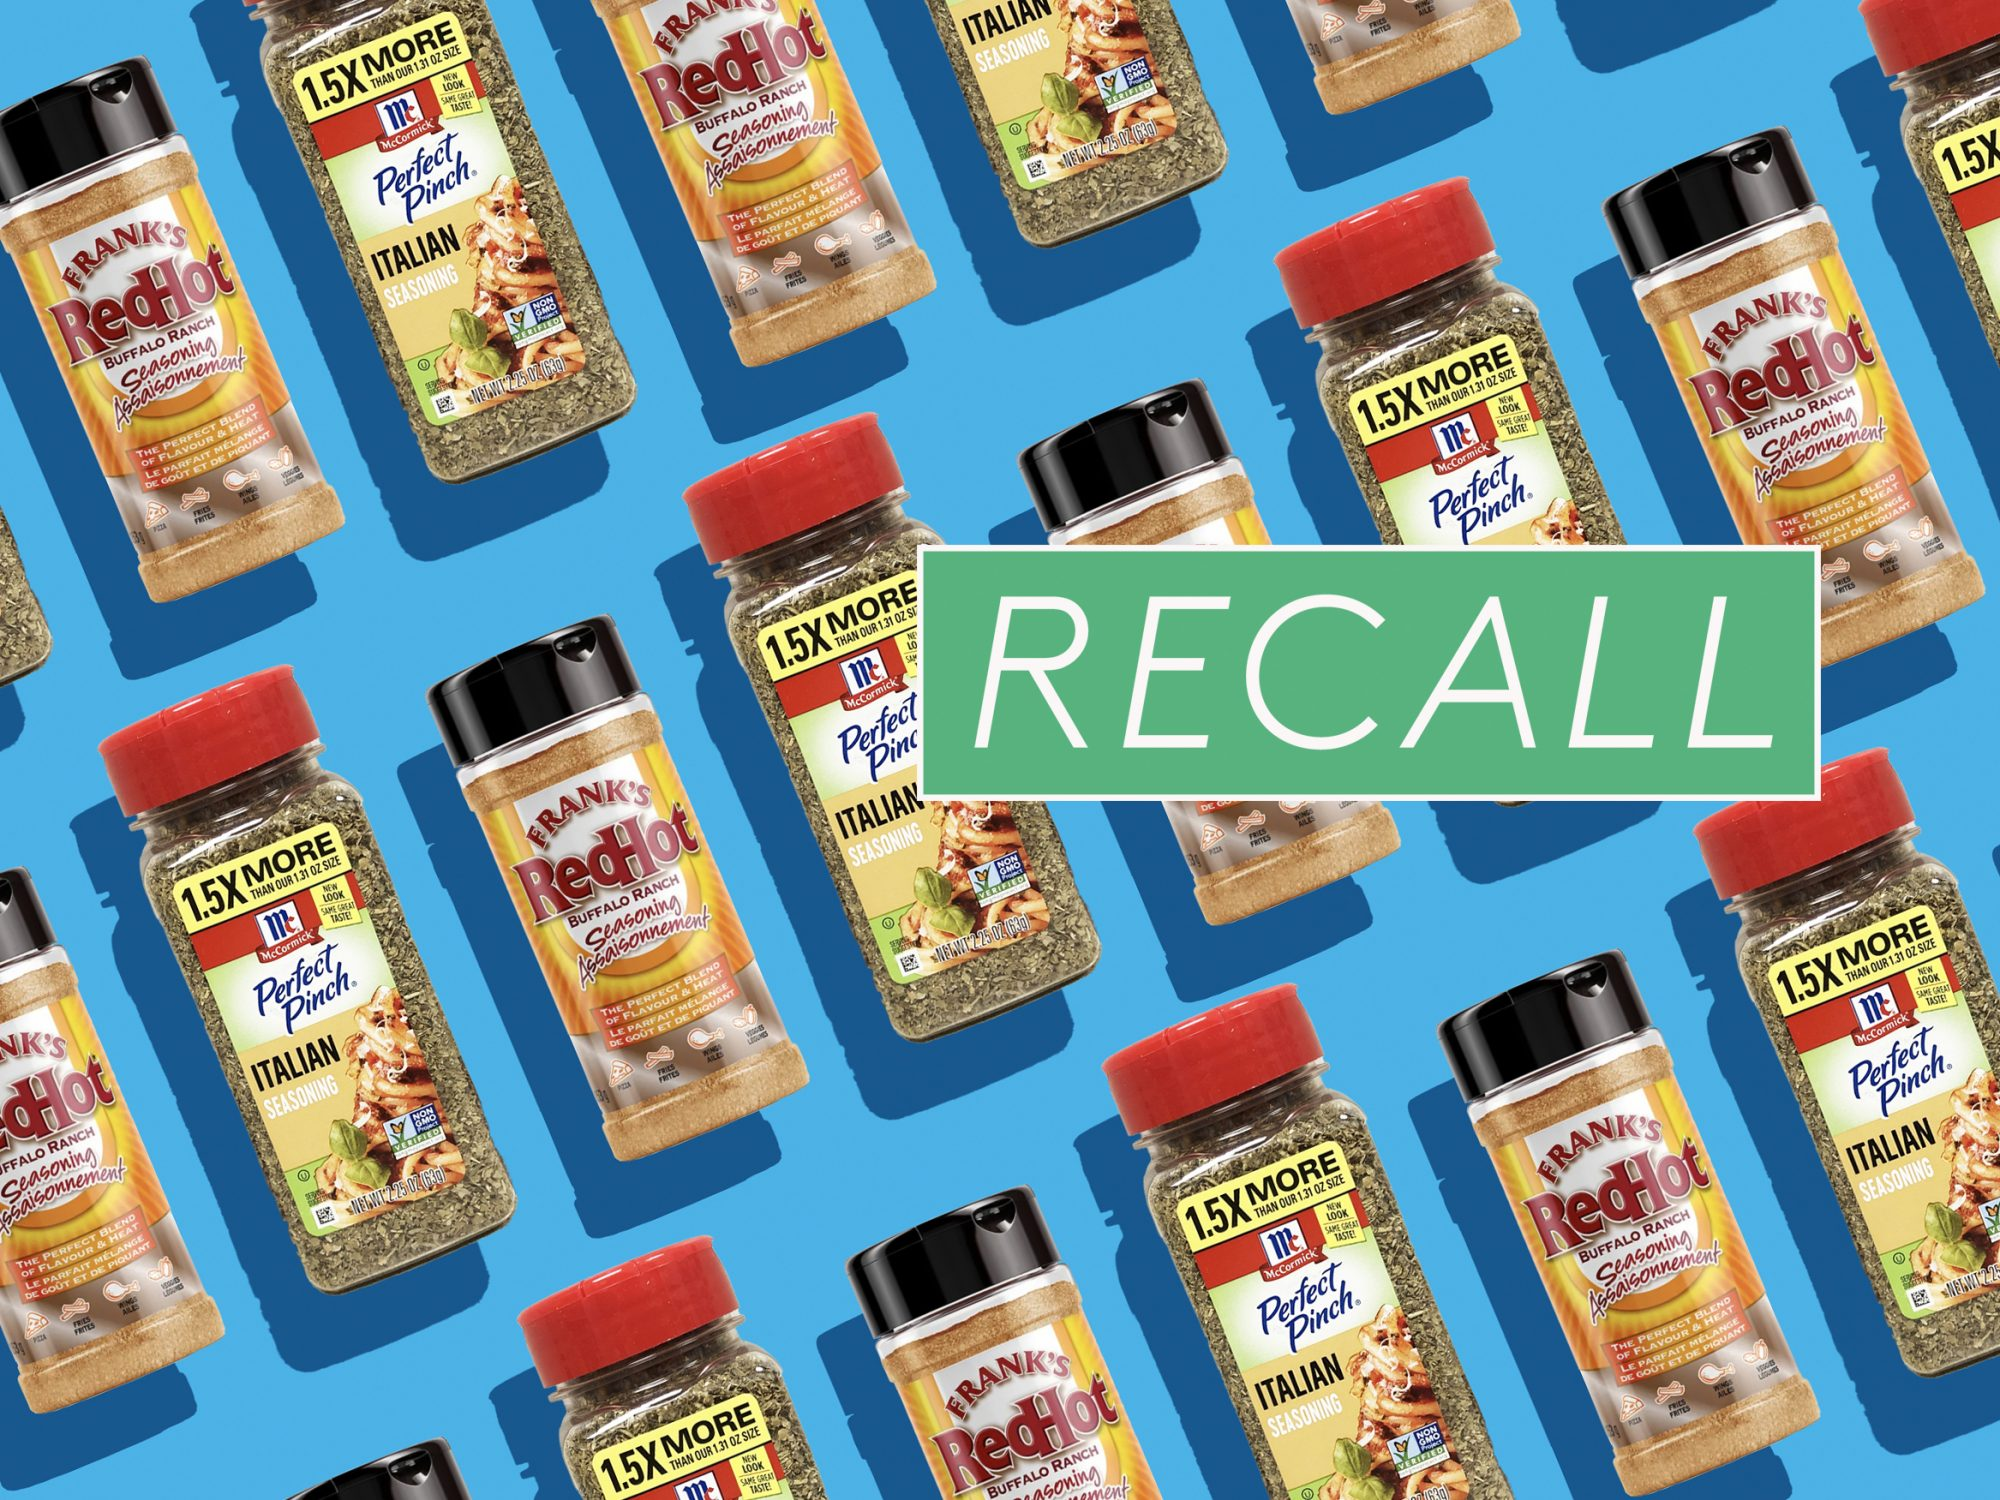 McCormick Is Voluntarily Recalling Seasonings in 32 States Due to Possible Salmonella Risk